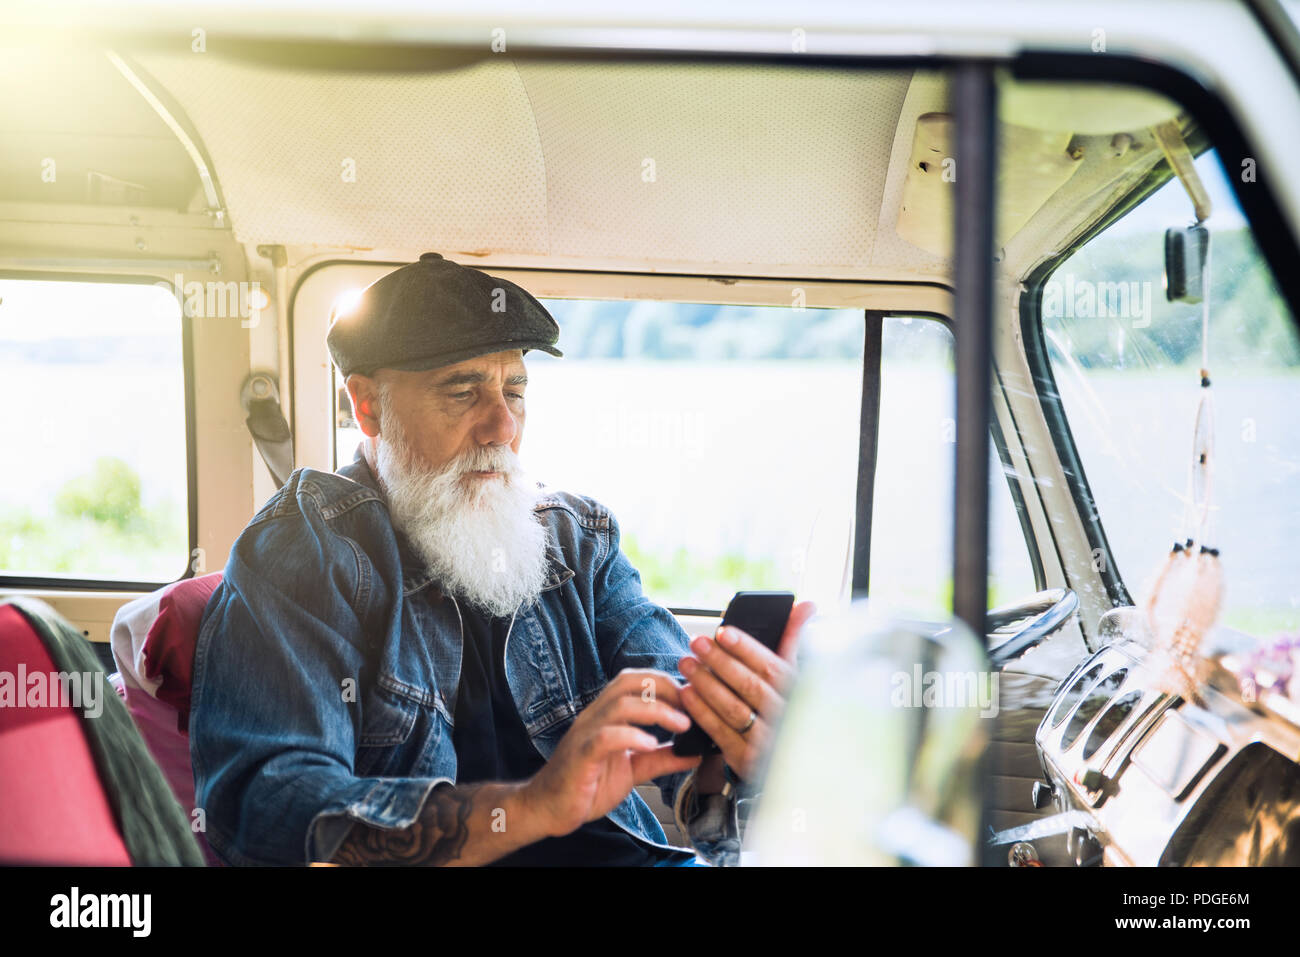 A senior hipster sitting in his camper van, using a phone. - Stock Image